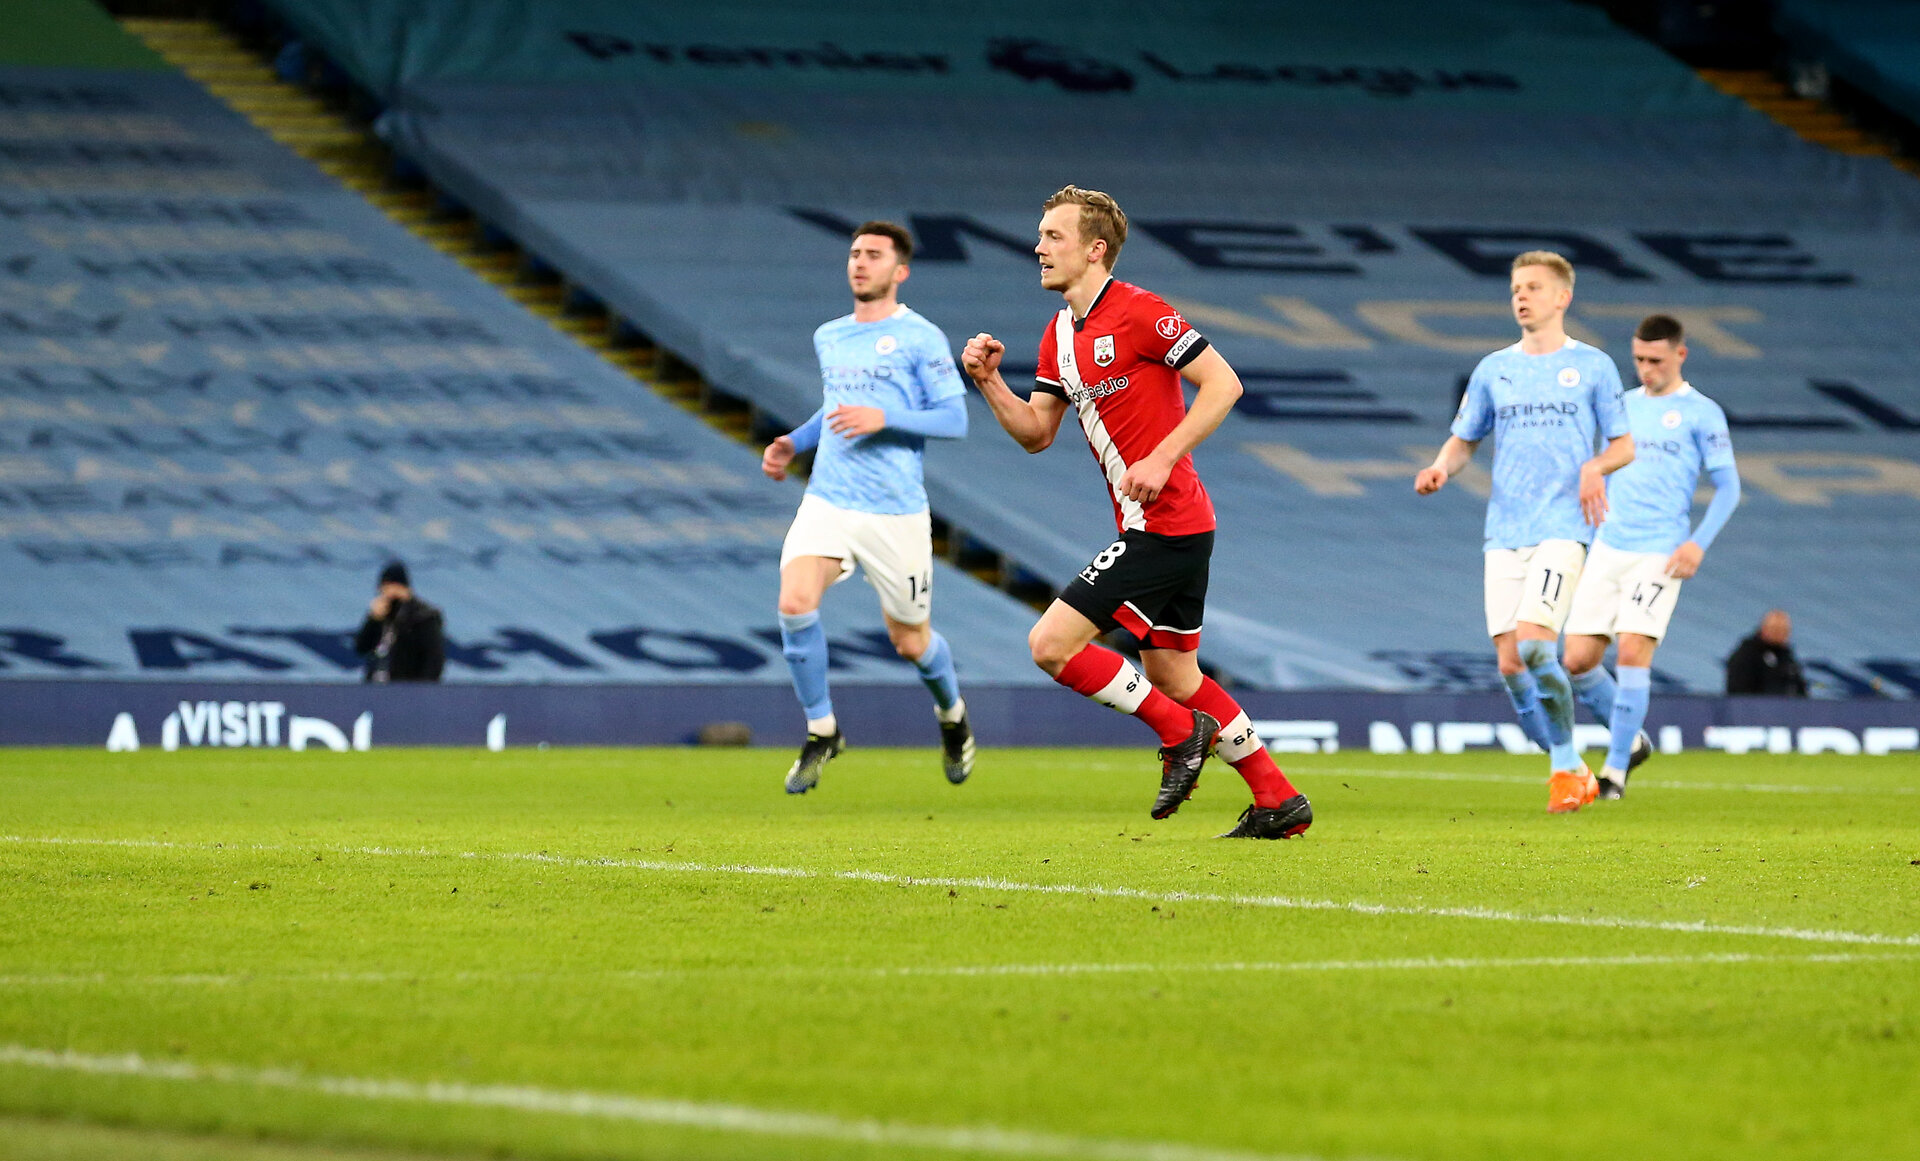 MANCHESTER, ENGLAND - MARCH 10: James Ward-Prowse of Southampton celebrates after scoring from the penalty spot to make it 1-1 during the Premier League match between Manchester City and Southampton at Etihad Stadium on March 10, 2021 in Manchester, England. Sporting stadiums around the UK remain under strict restrictions due to the Coronavirus Pandemic as Government social distancing laws prohibit fans inside venues resulting in games being played behind closed doors. (Photo by Matt Watson/Southampton FC via Getty Images)